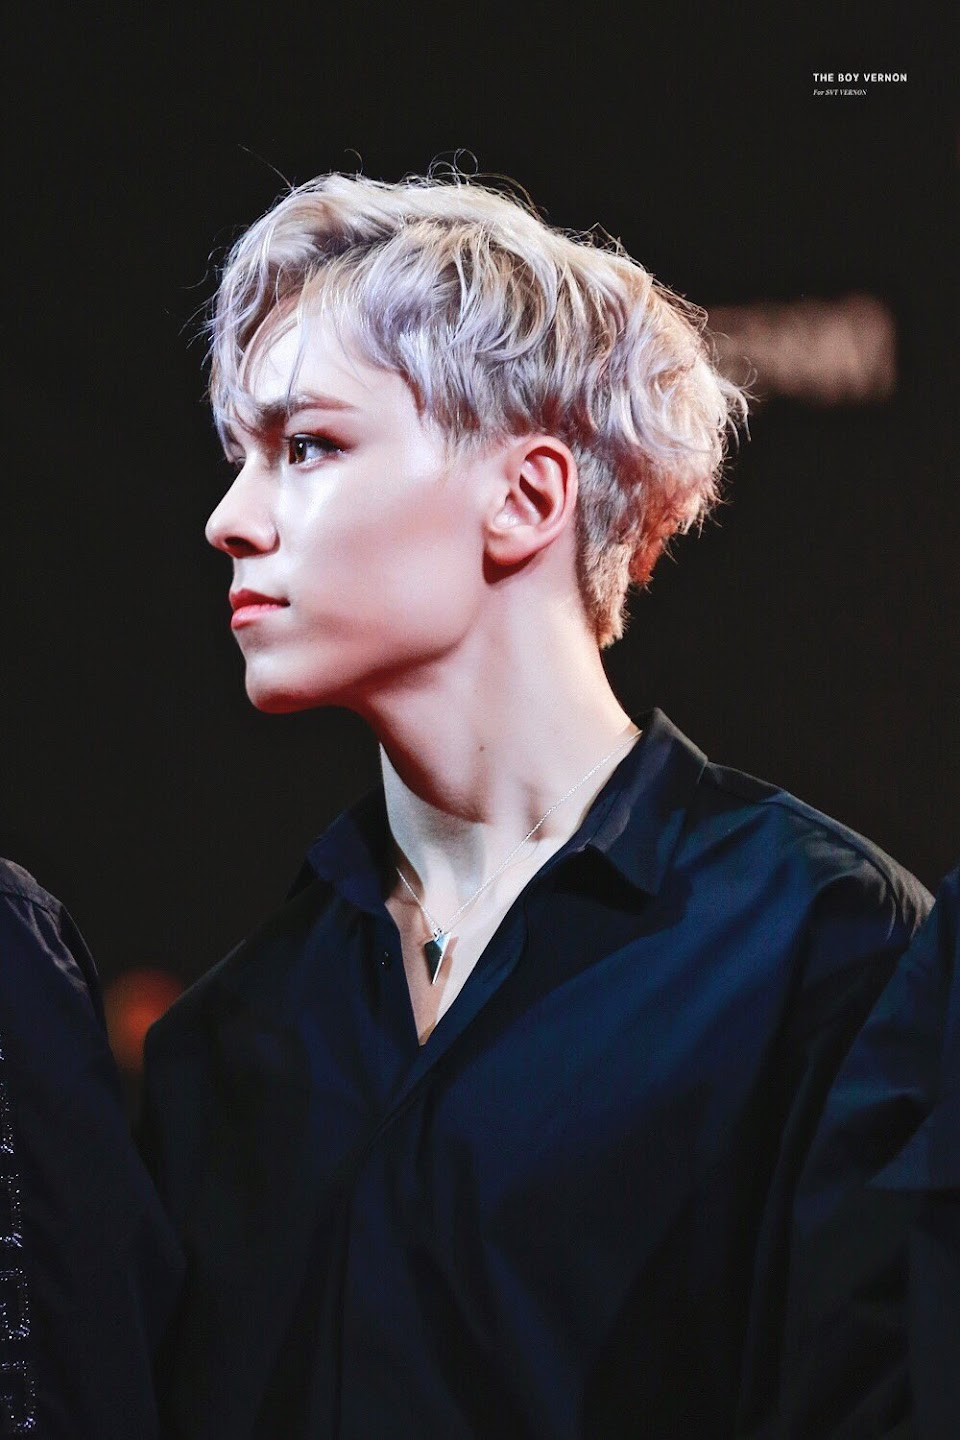 vernon side profile theboyvernon